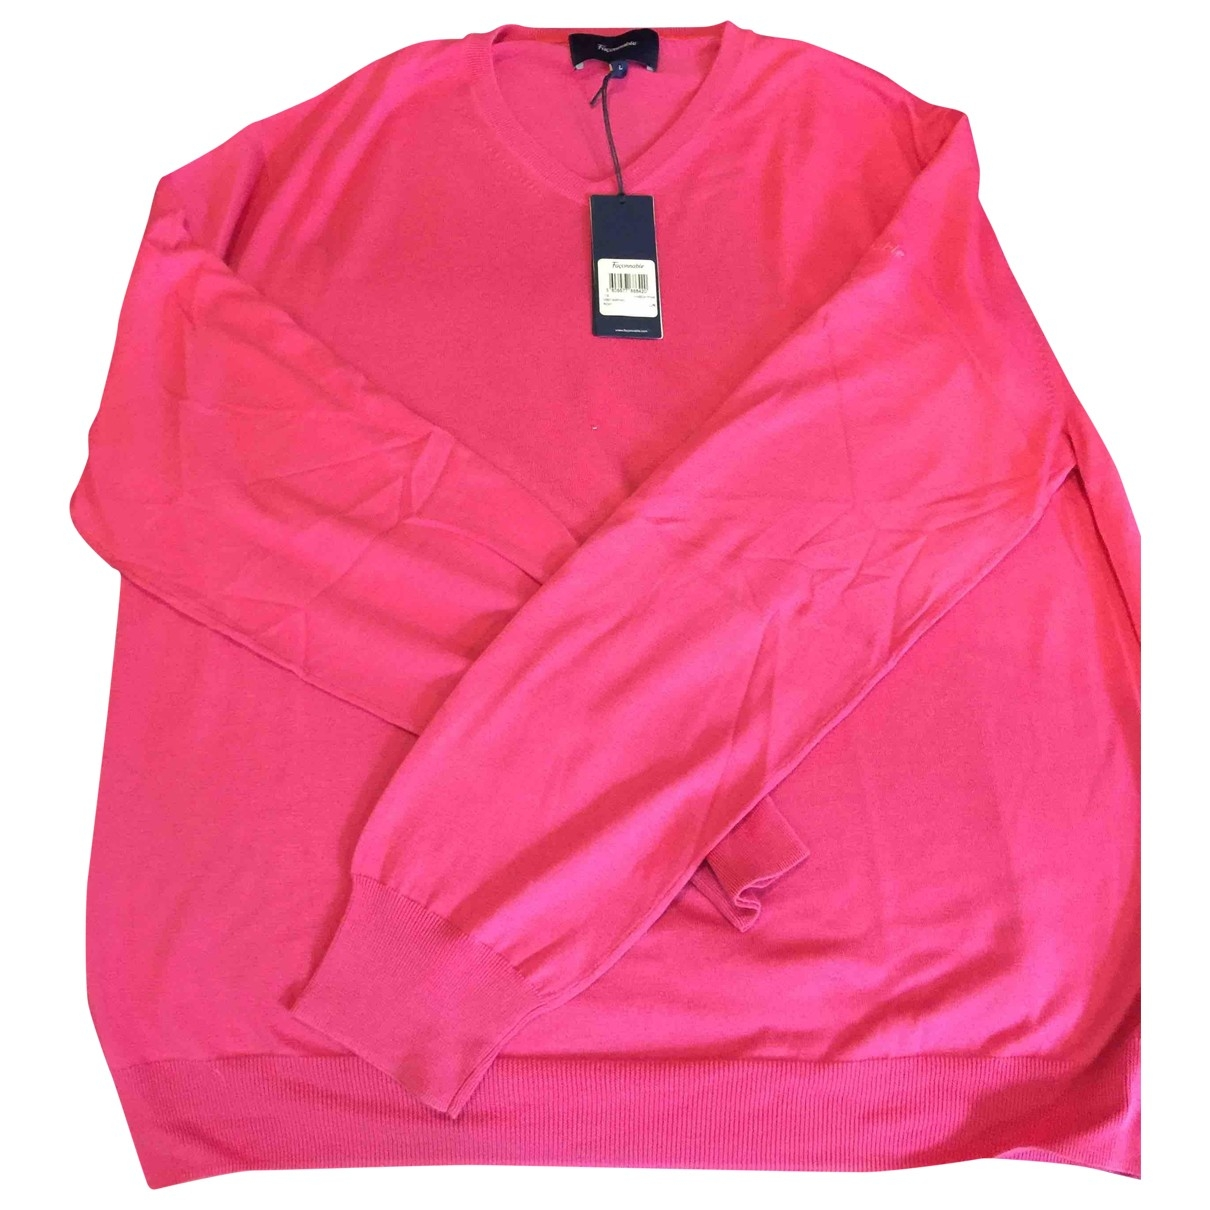 Faconnable \N Pink Cotton Knitwear & Sweatshirts for Men L International